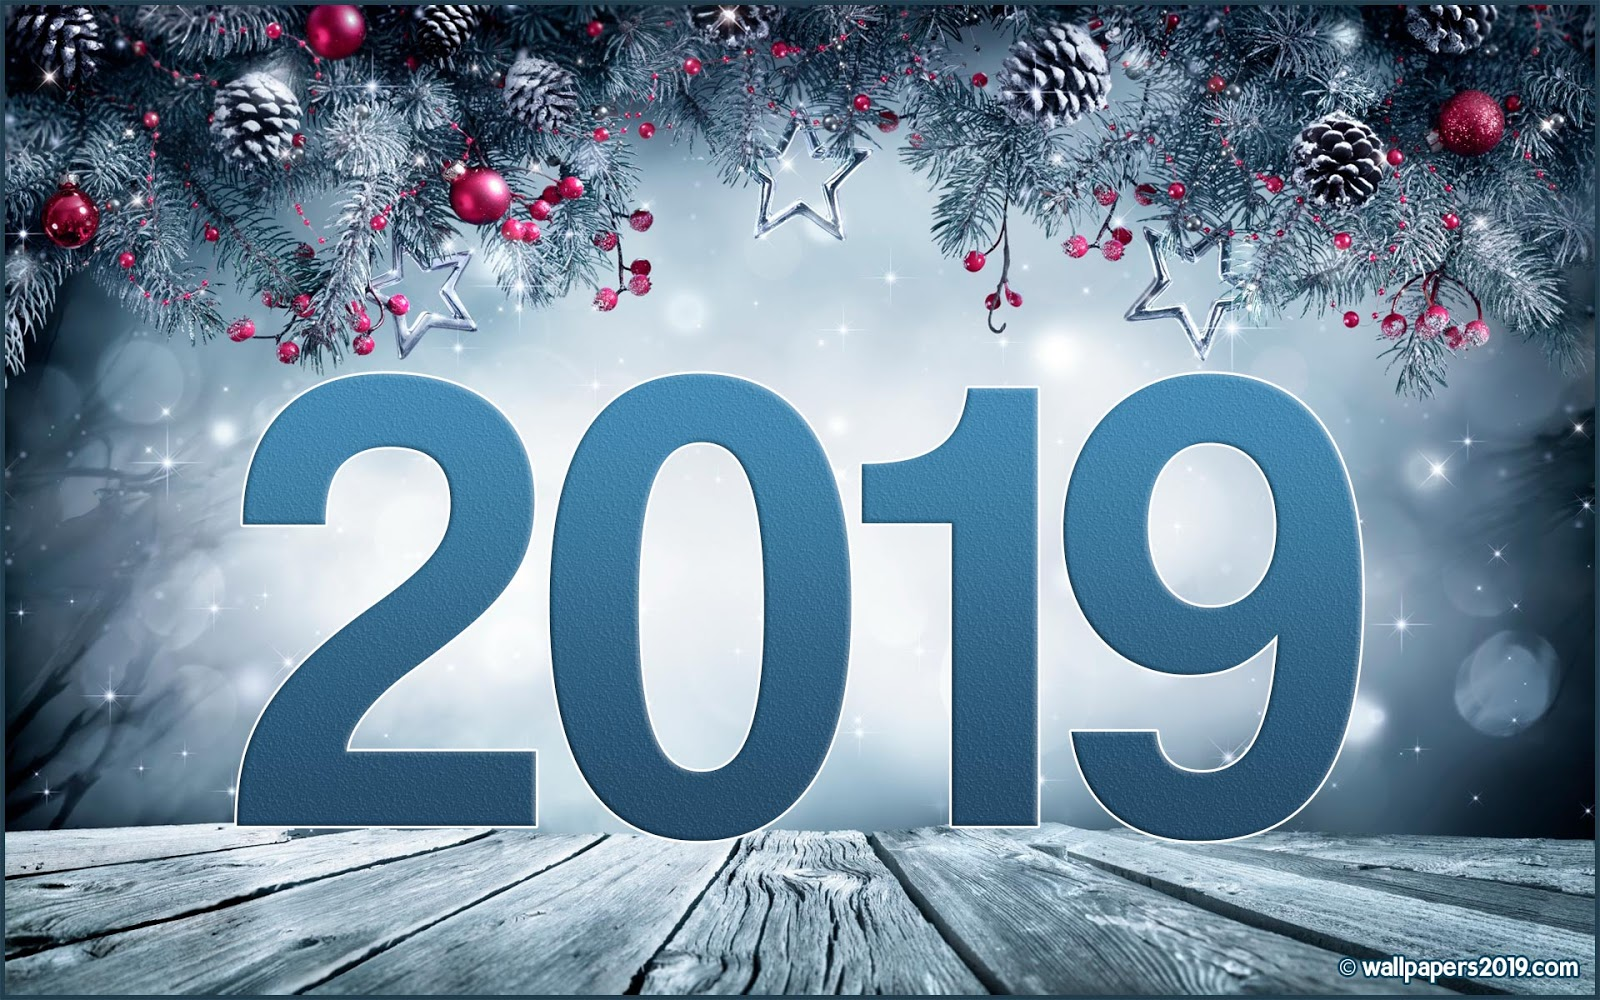 Wallpapers 2019 HD - Happy New Year 2019 【 Wallpapers